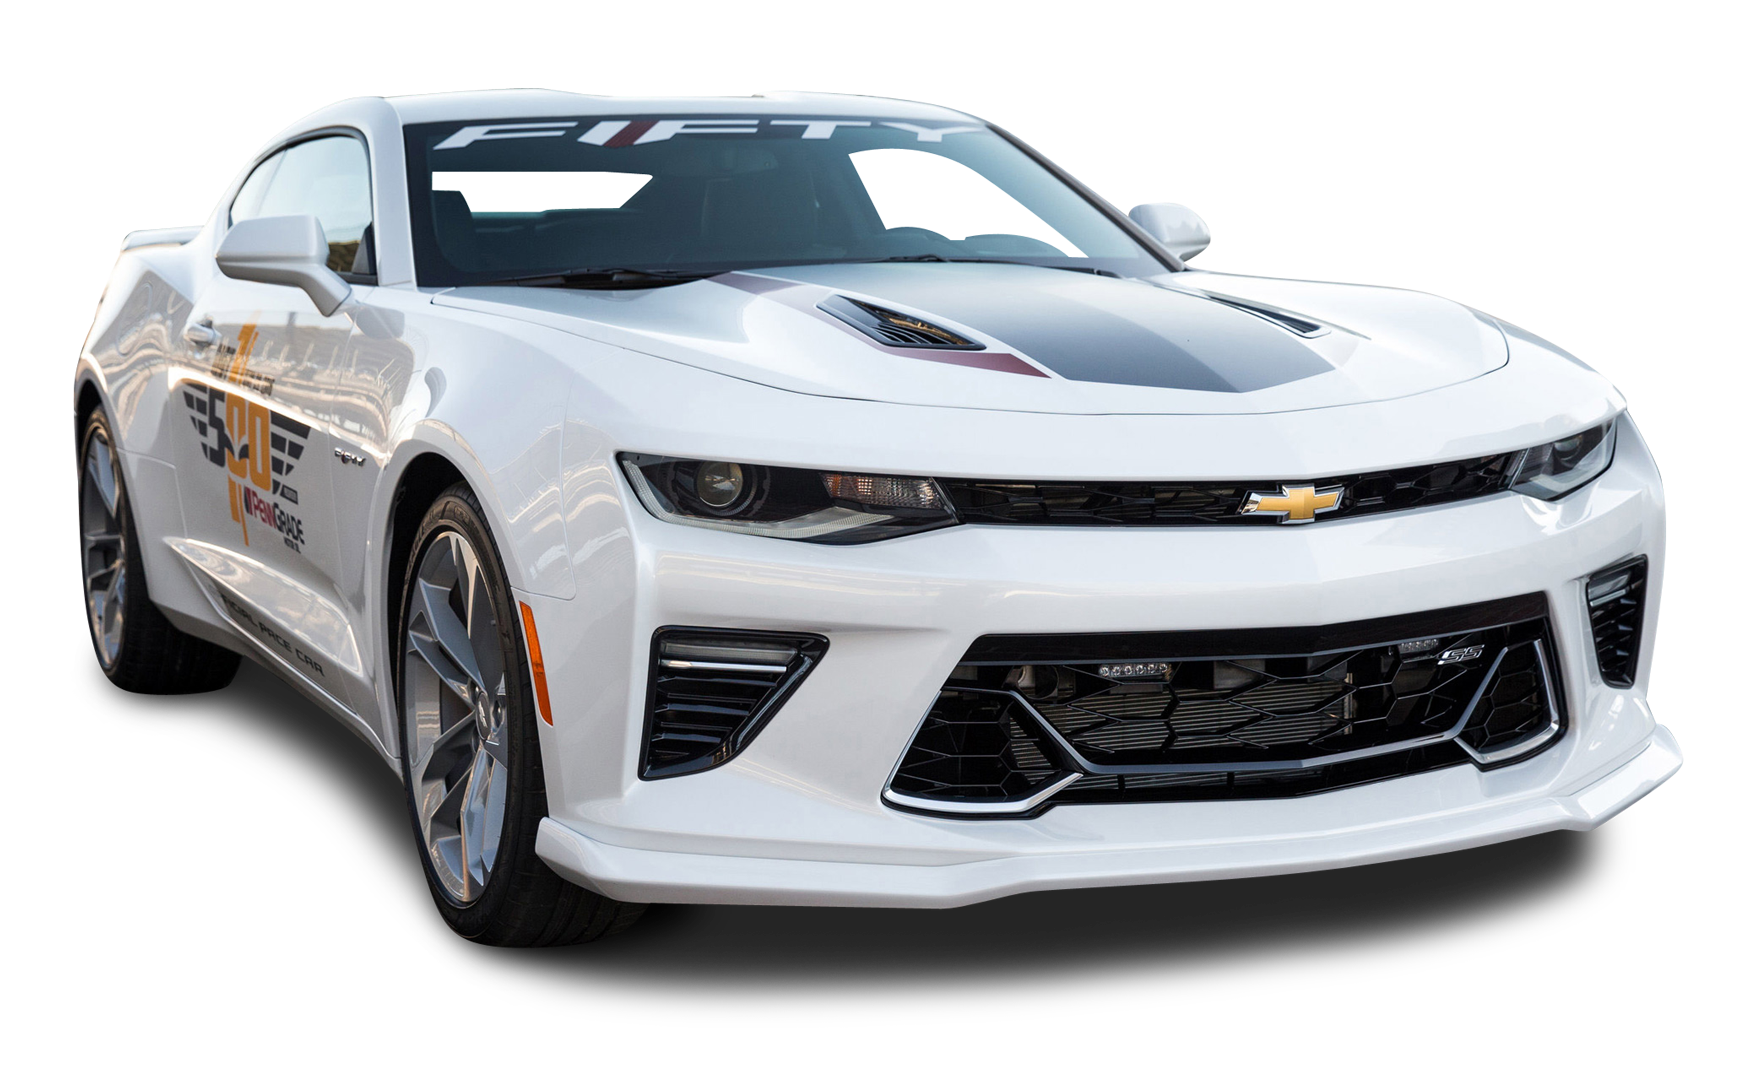 Download Chevrolet Camaro PNG Image for Free.